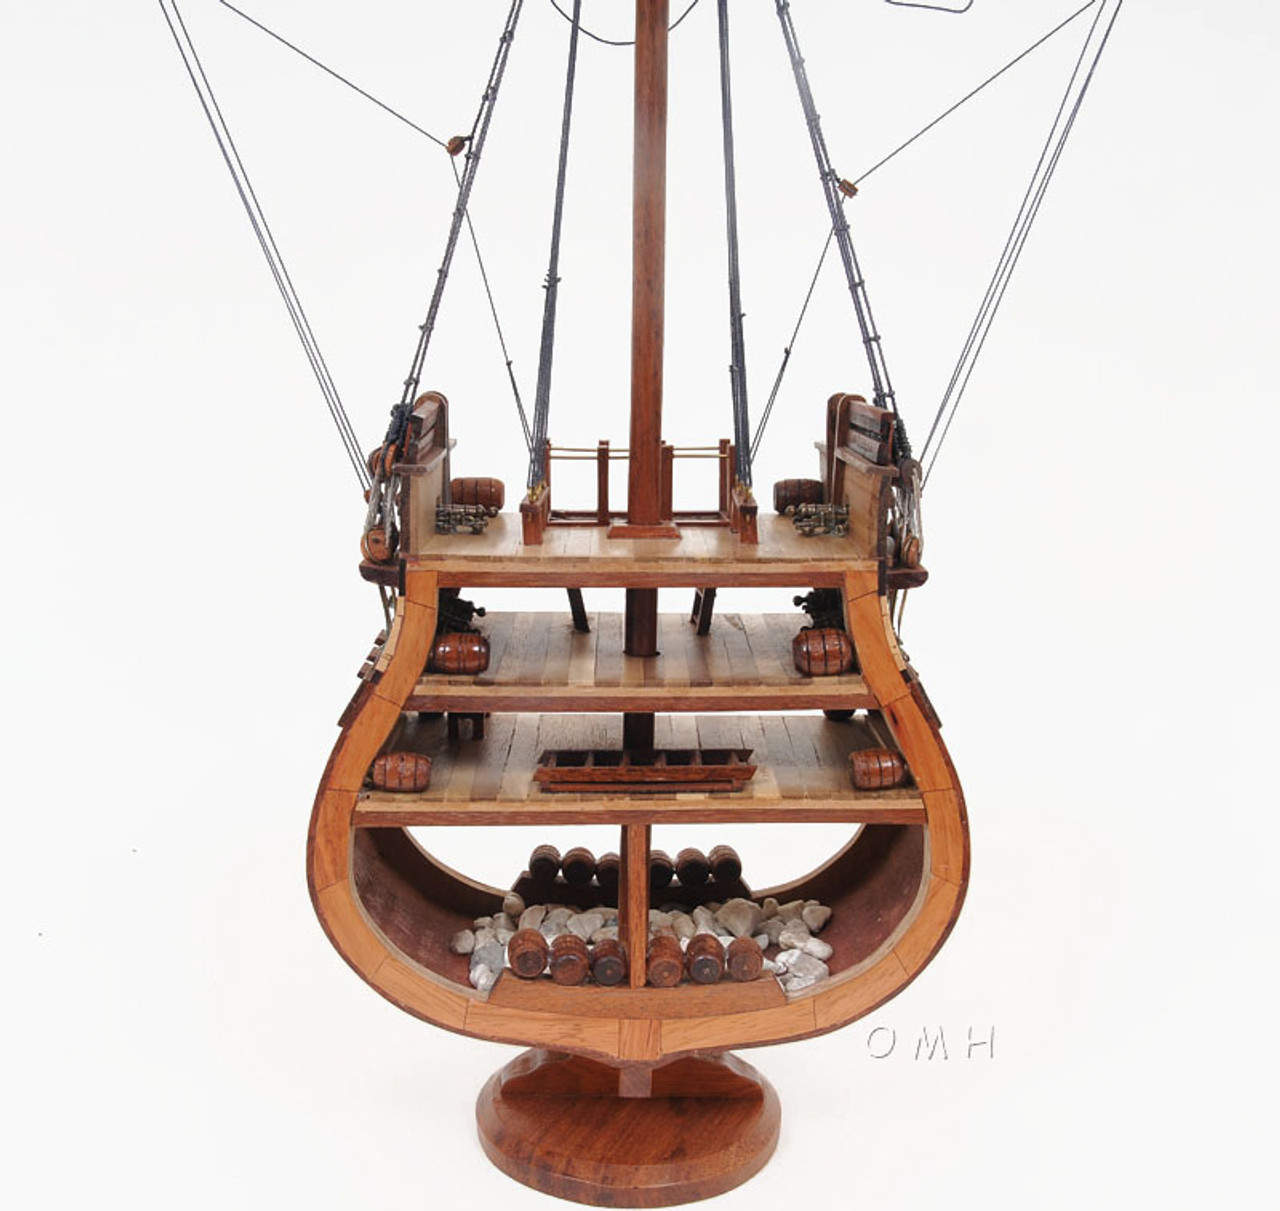 USS Constitution Cross Section Tall Ship Model